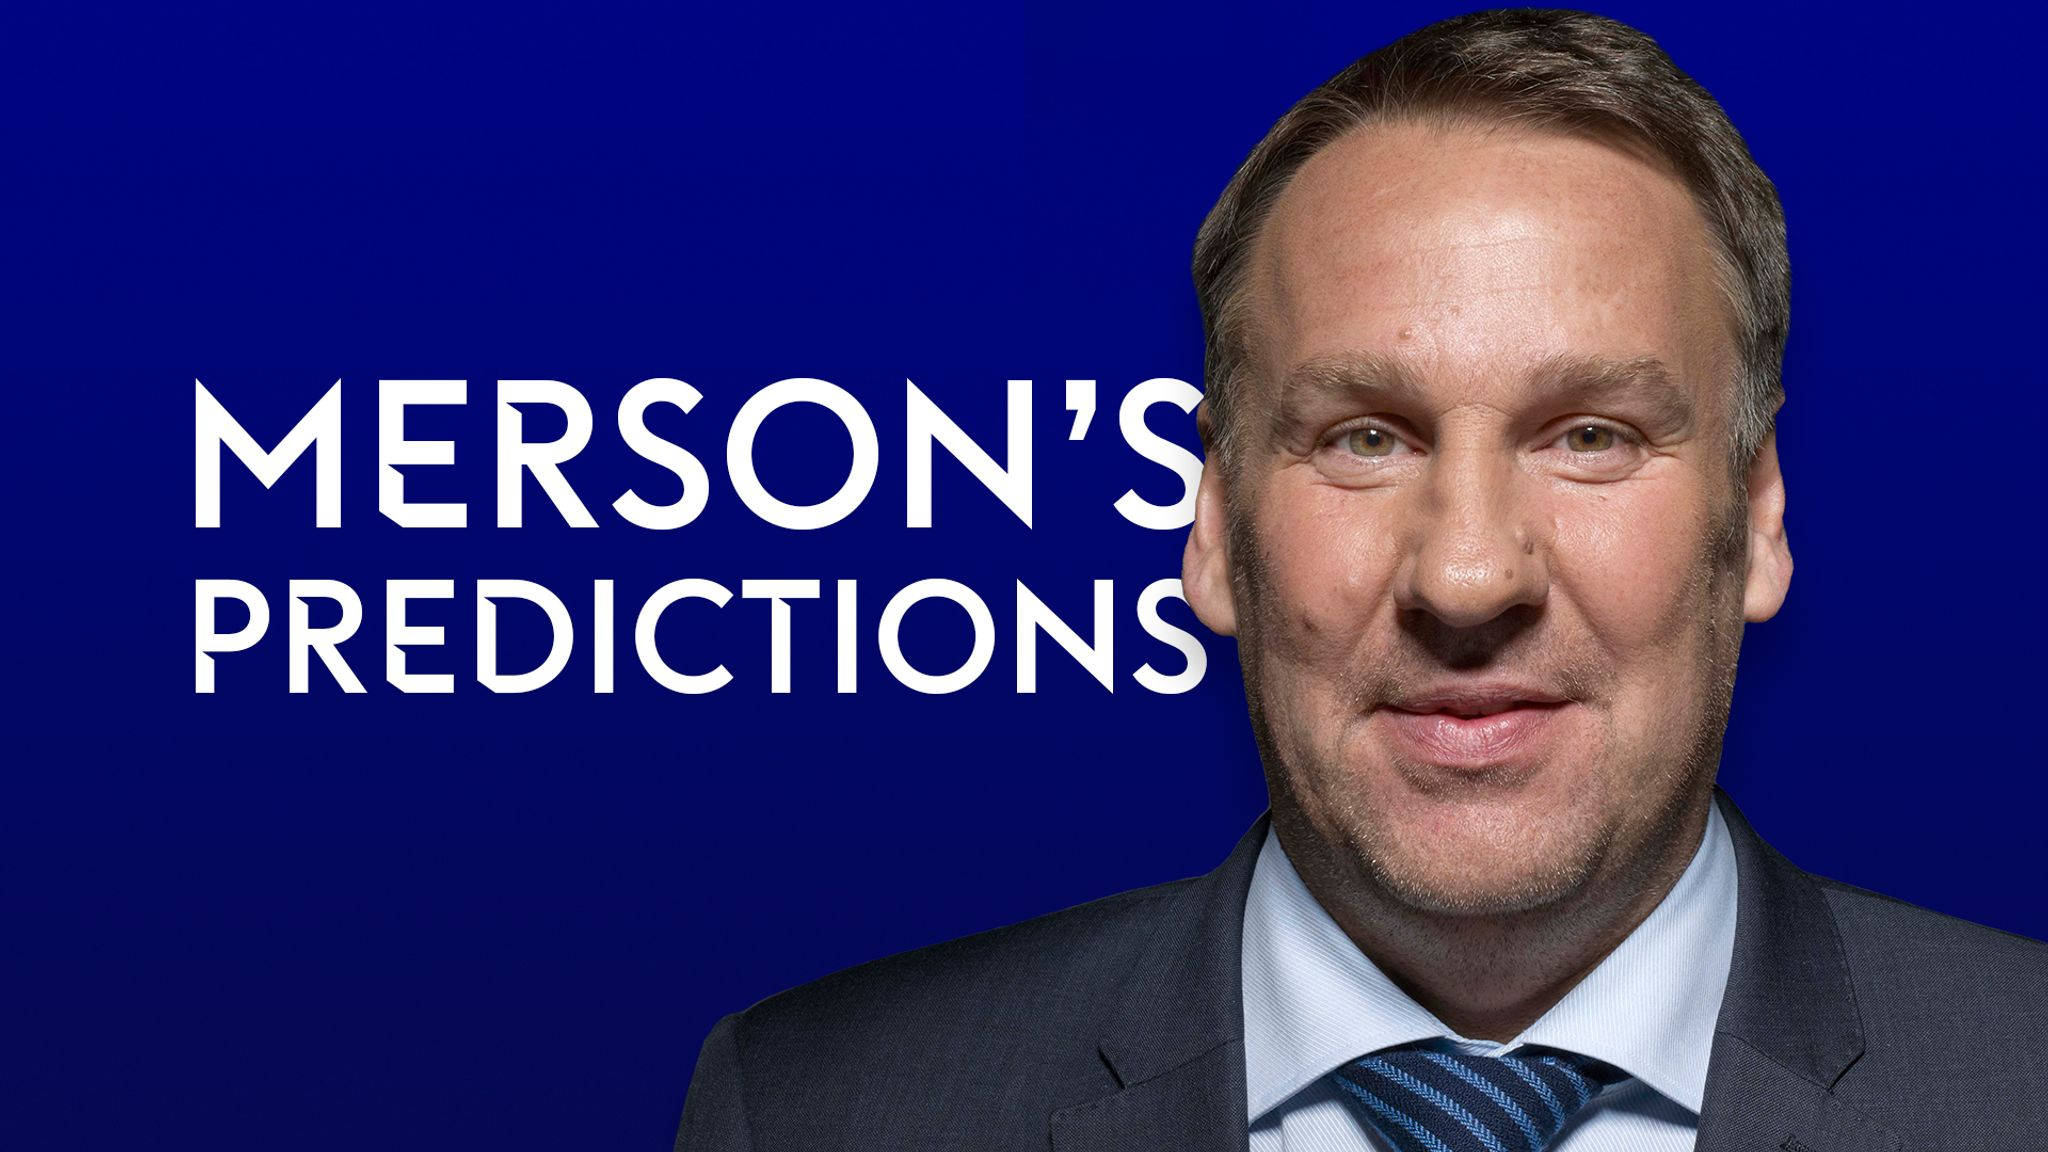 Paul Merson's predictions: Arsenal vs Manchester United